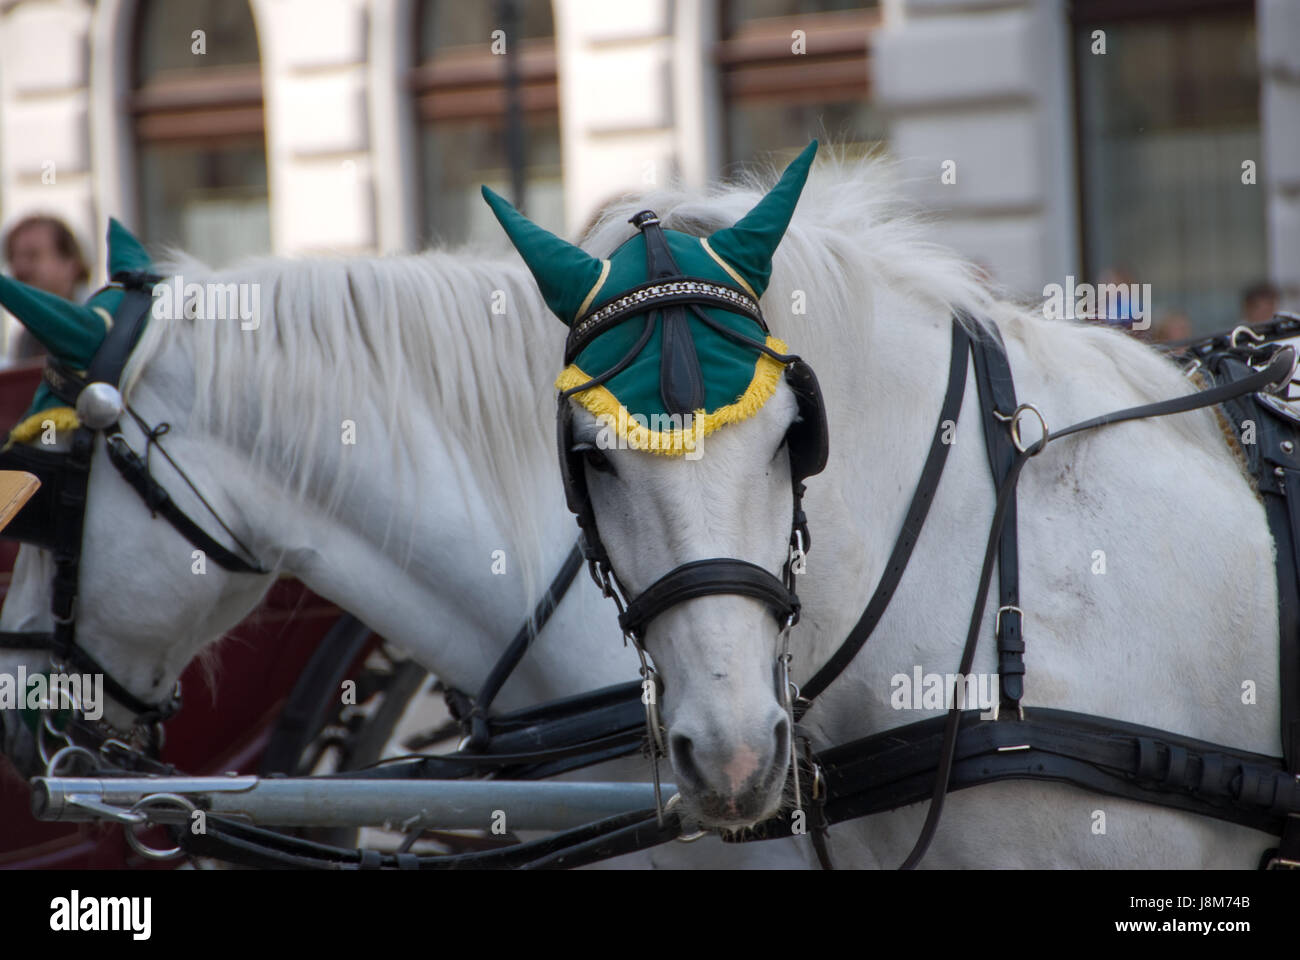 ride, horse, vienna, austria, carriage, coach, bridle, cab, vehicle, means of - Stock Image